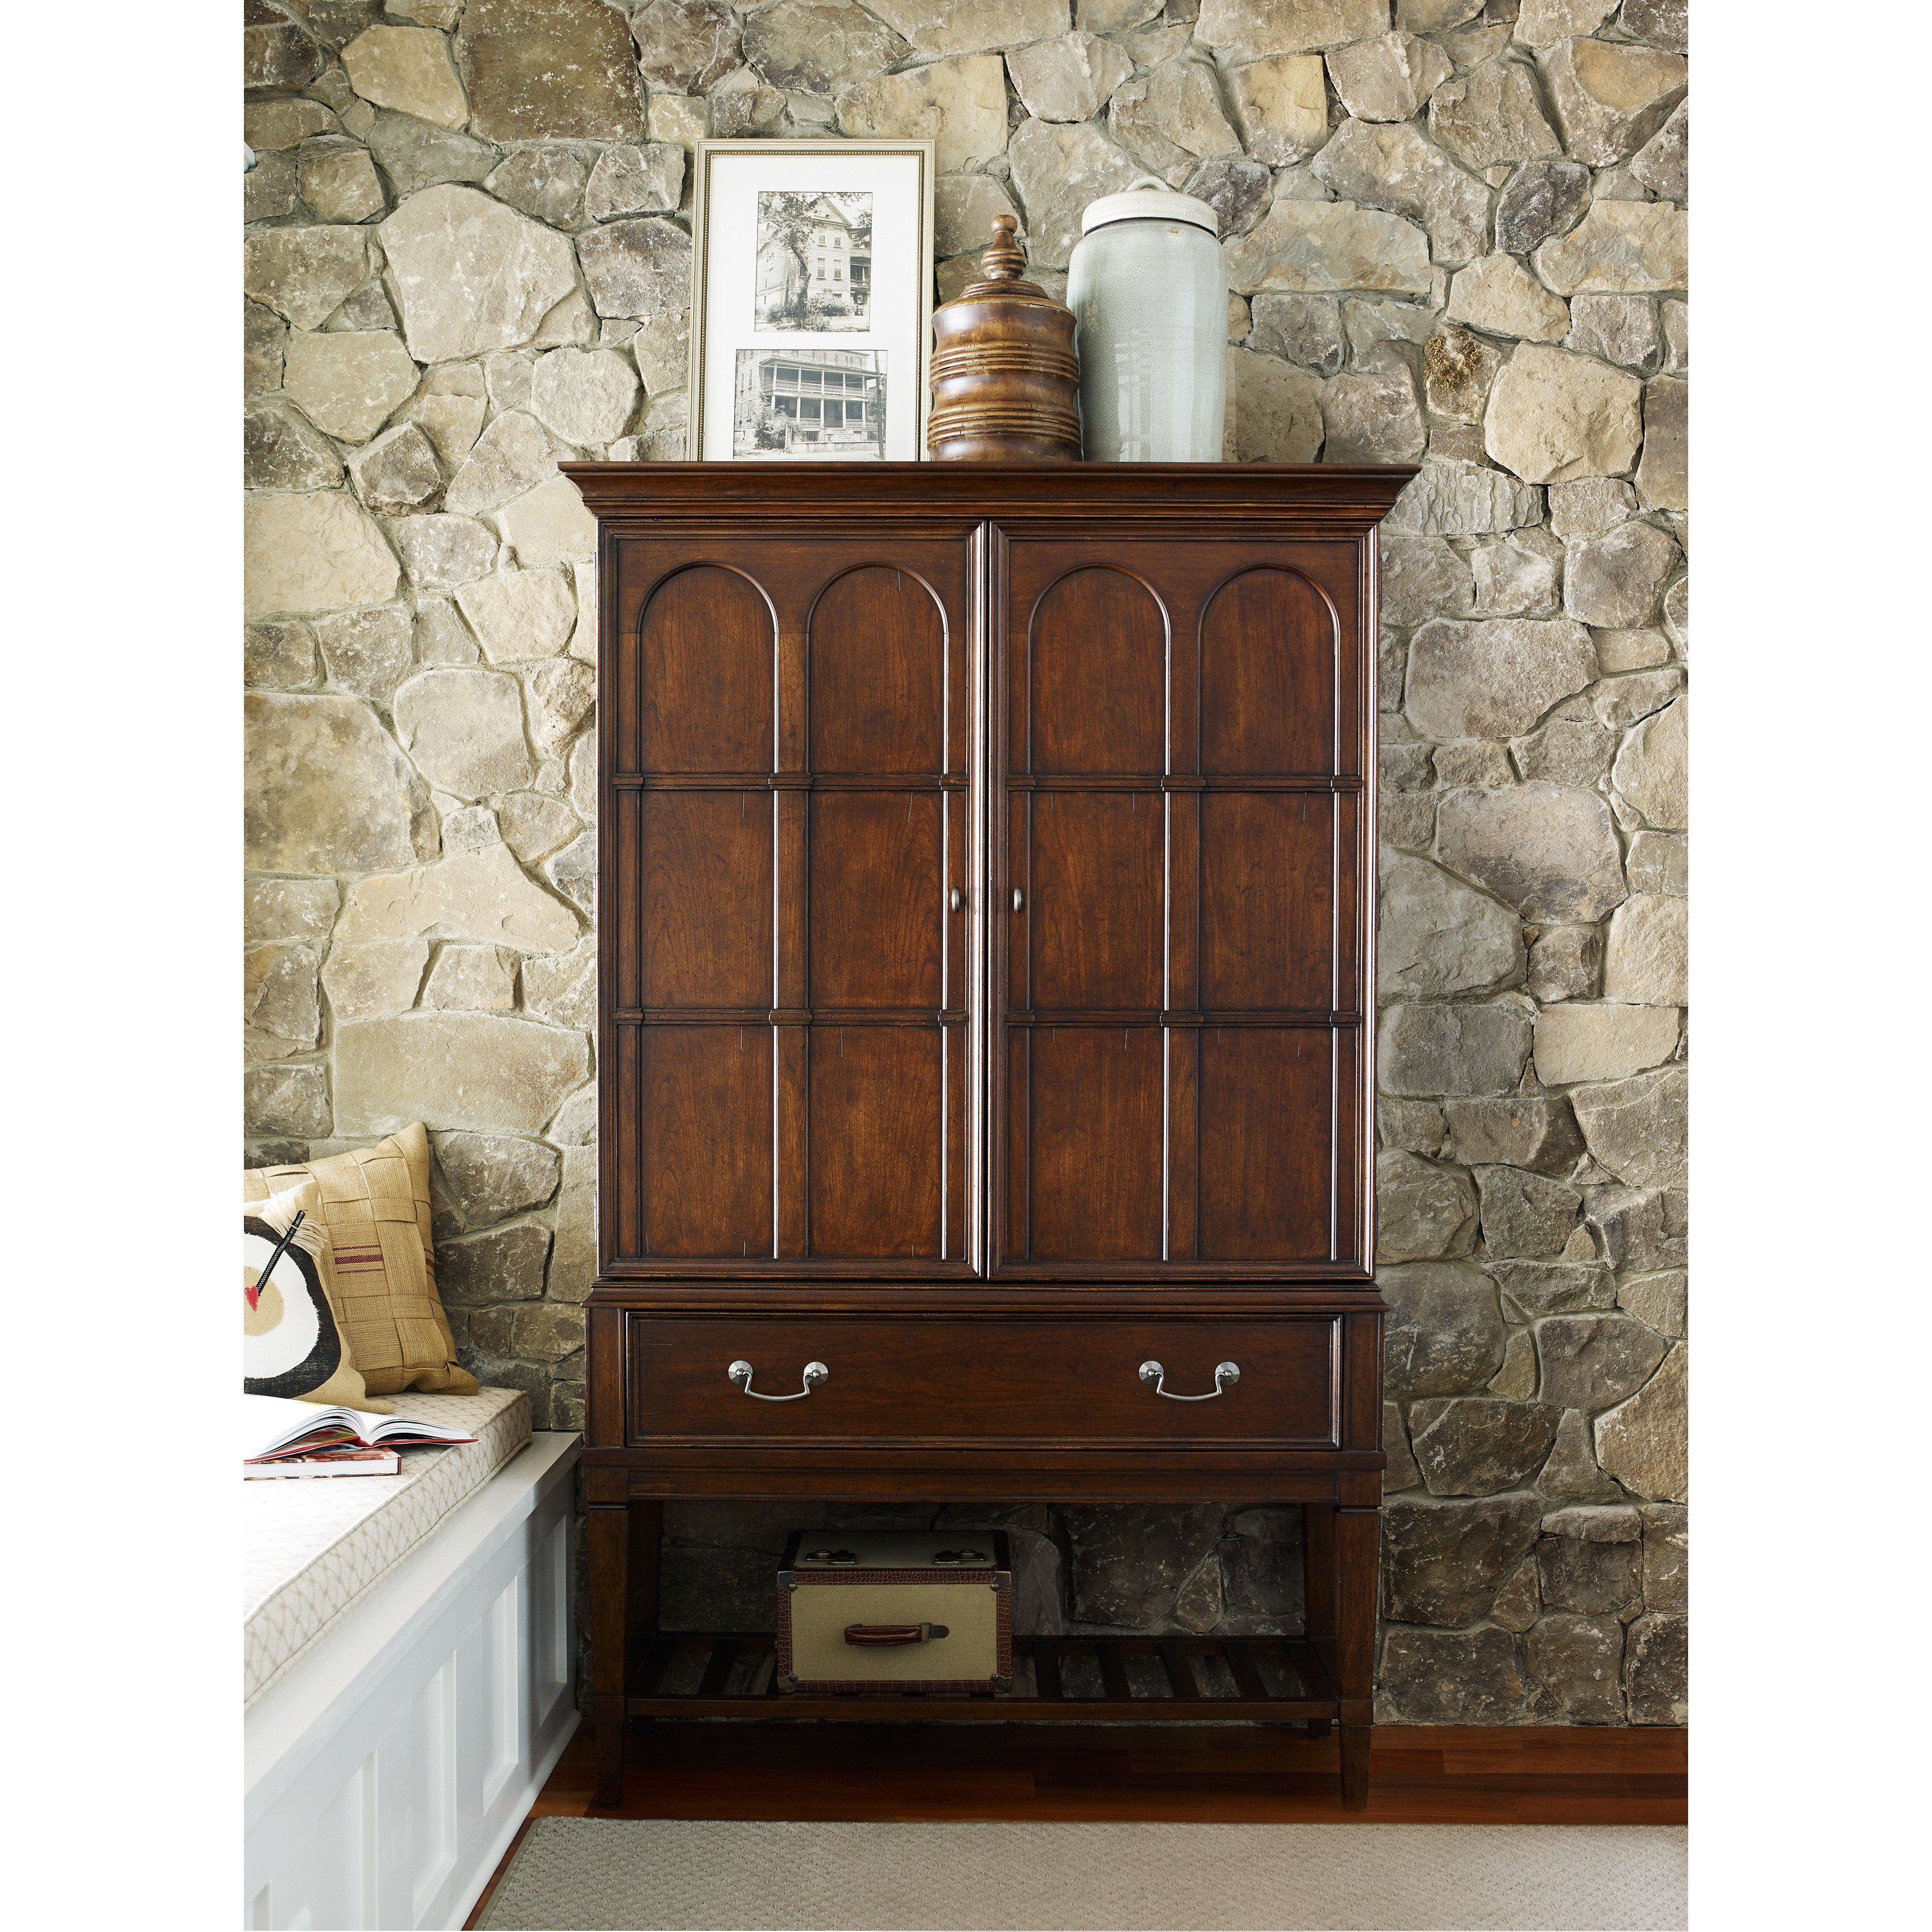 Well Liked Rachael Ray Upstatelegacy Classic Bar Cabinet – 6040 155 Within Arminta Wood Sideboards (Gallery 9 of 20)